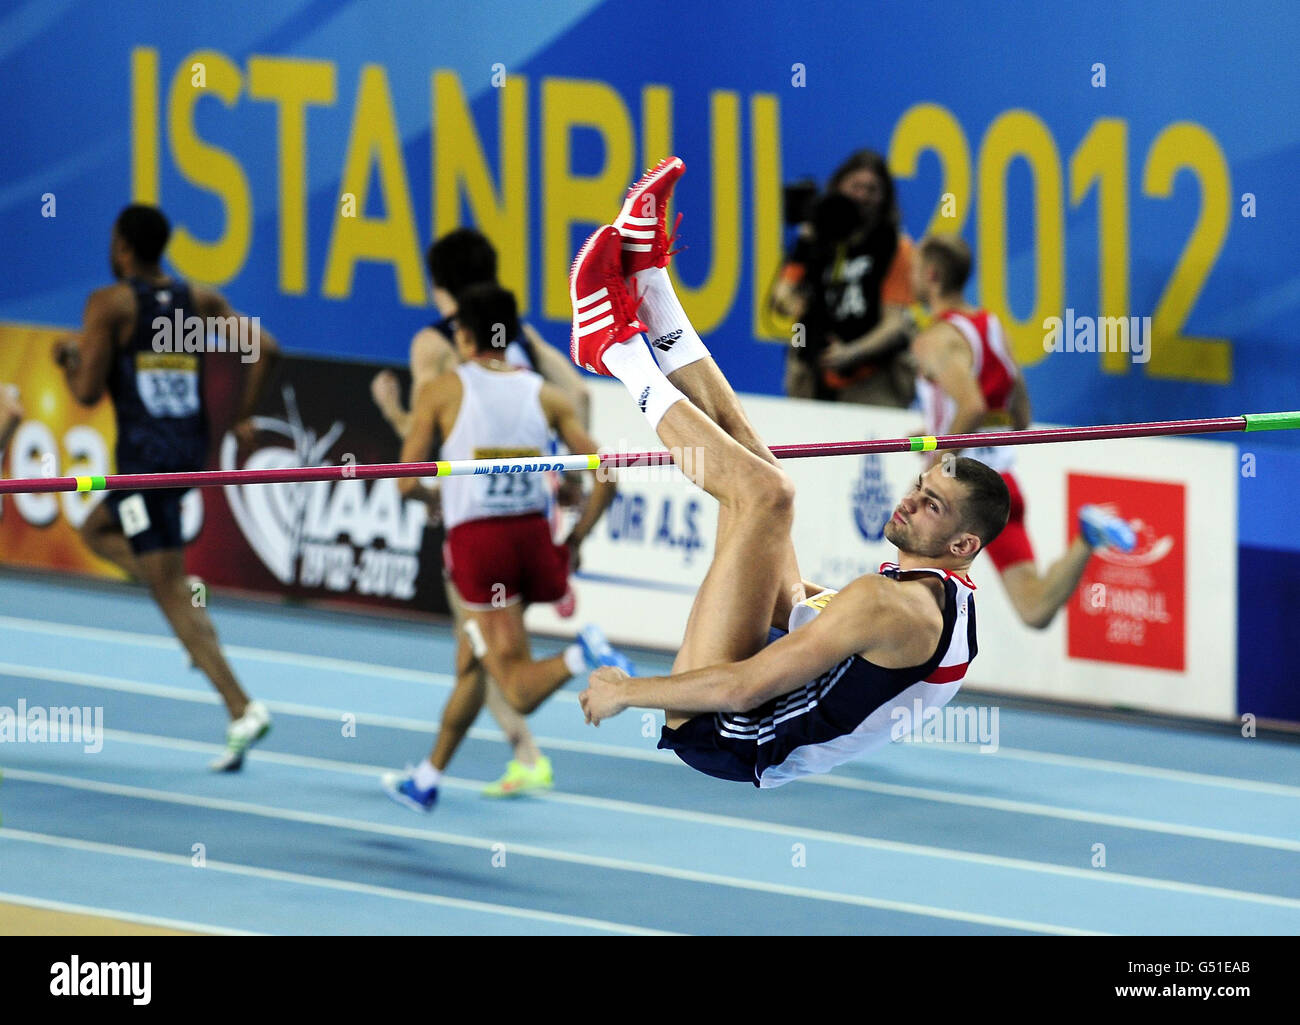 Athletics - IAAF World Indoor Championships - Day Two - Atakoy Athletics Arena - Stock Image